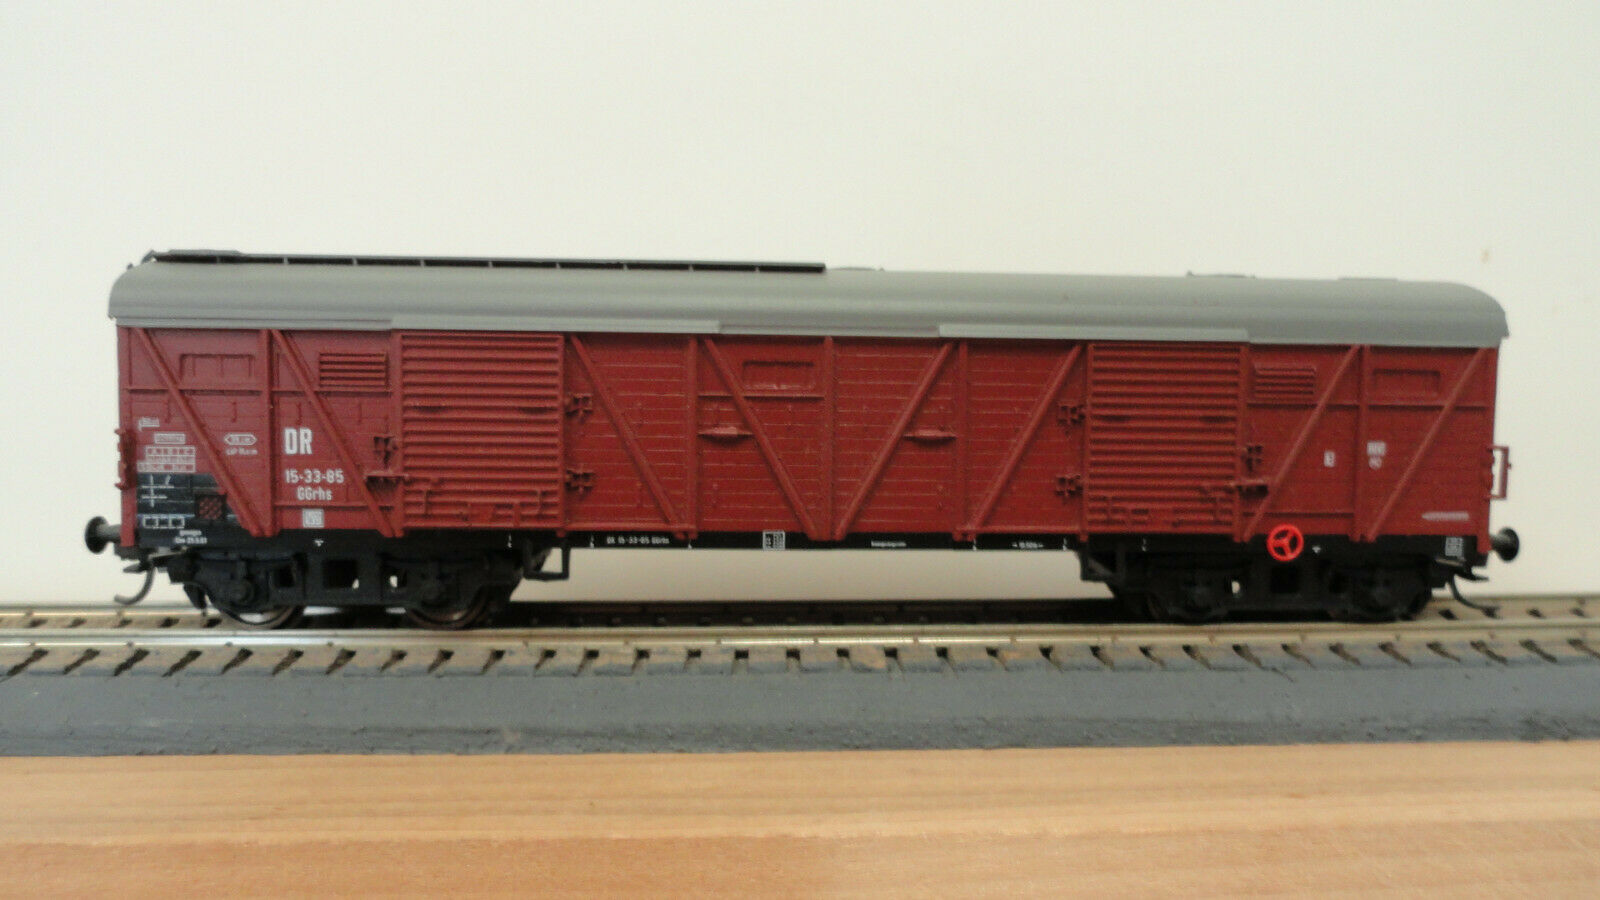 Piko HO J054 DR GGrhs double door freight wagon w  Kadee & RP25. No original box